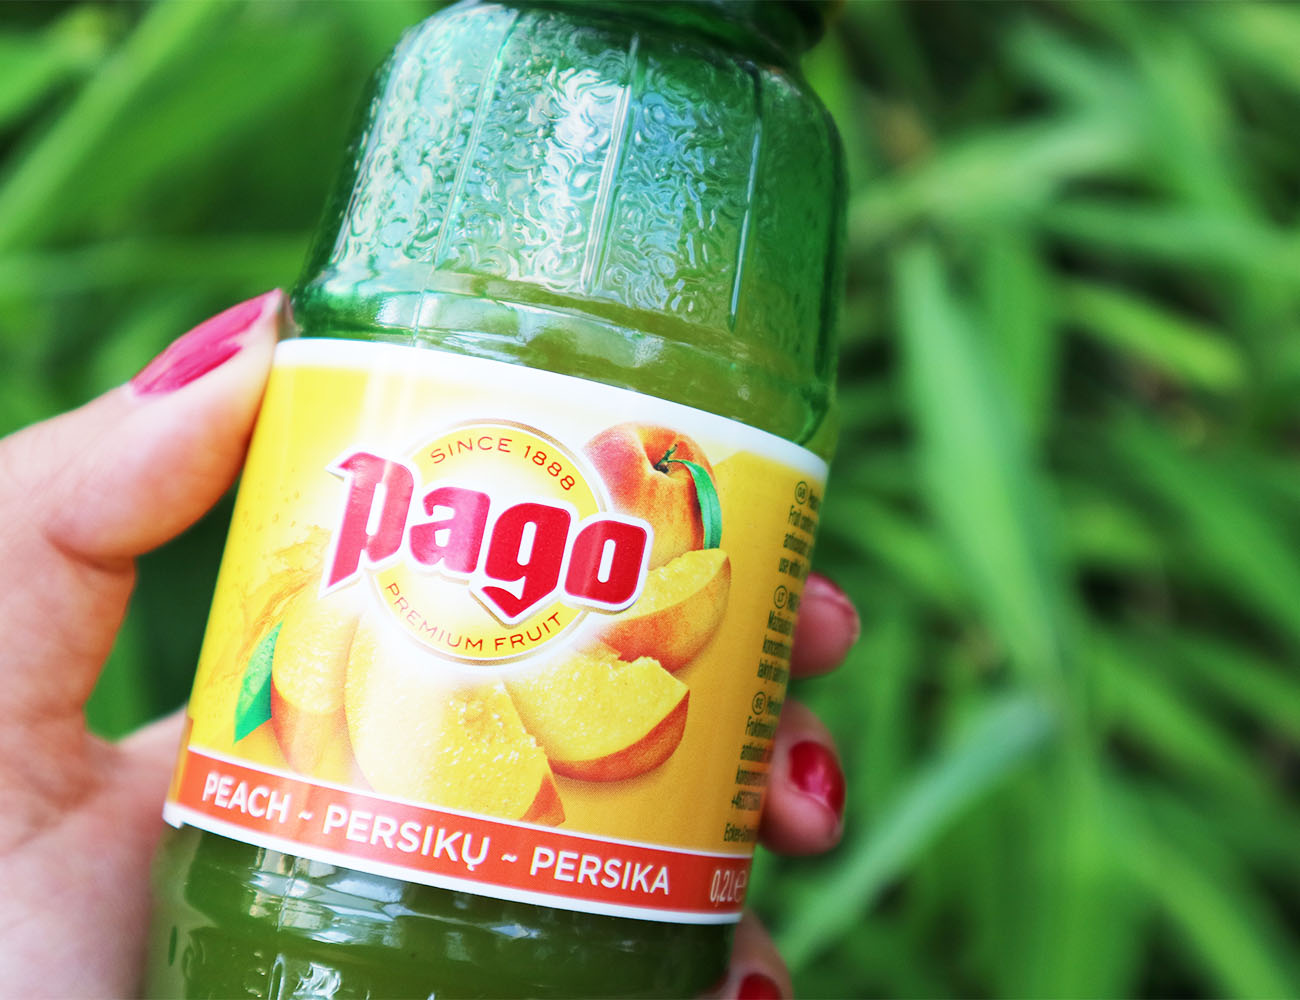 A bottle of Pago peach flavoured fruit juice